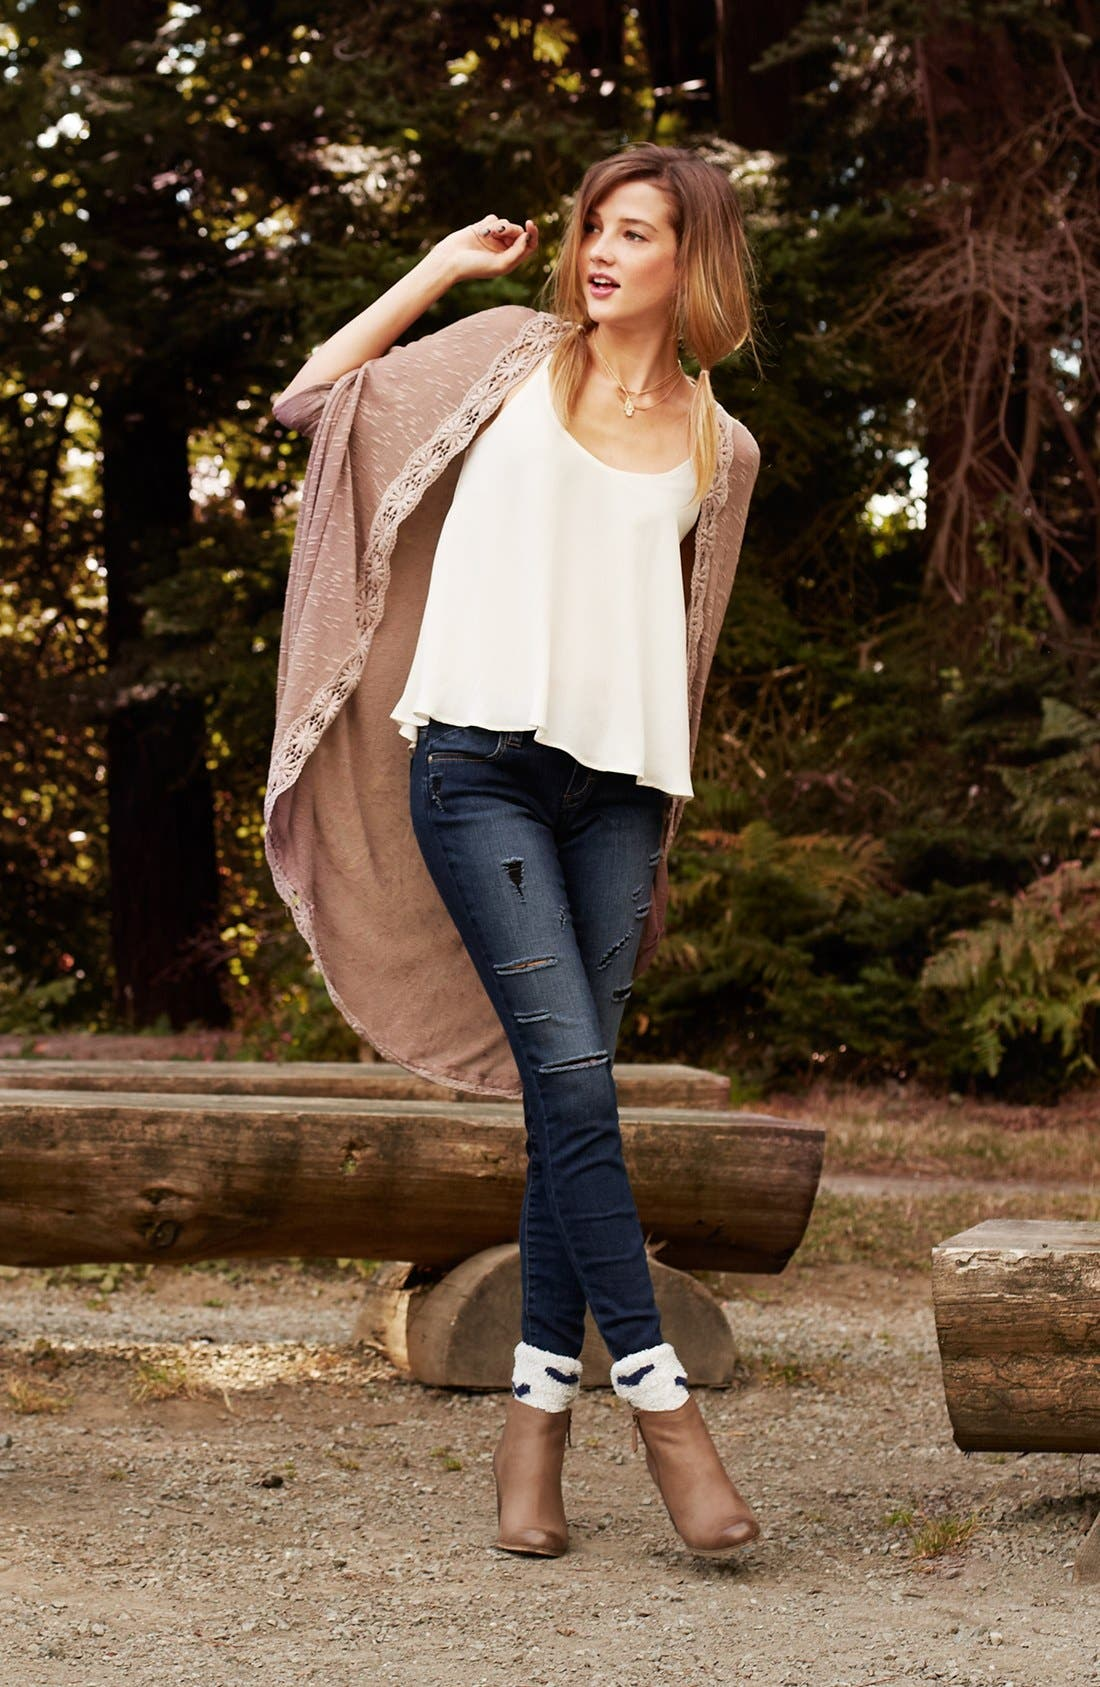 Alternate Image 1 Selected - Painted Threads Cardigan, Lush Camisole & STS Blue Jeans